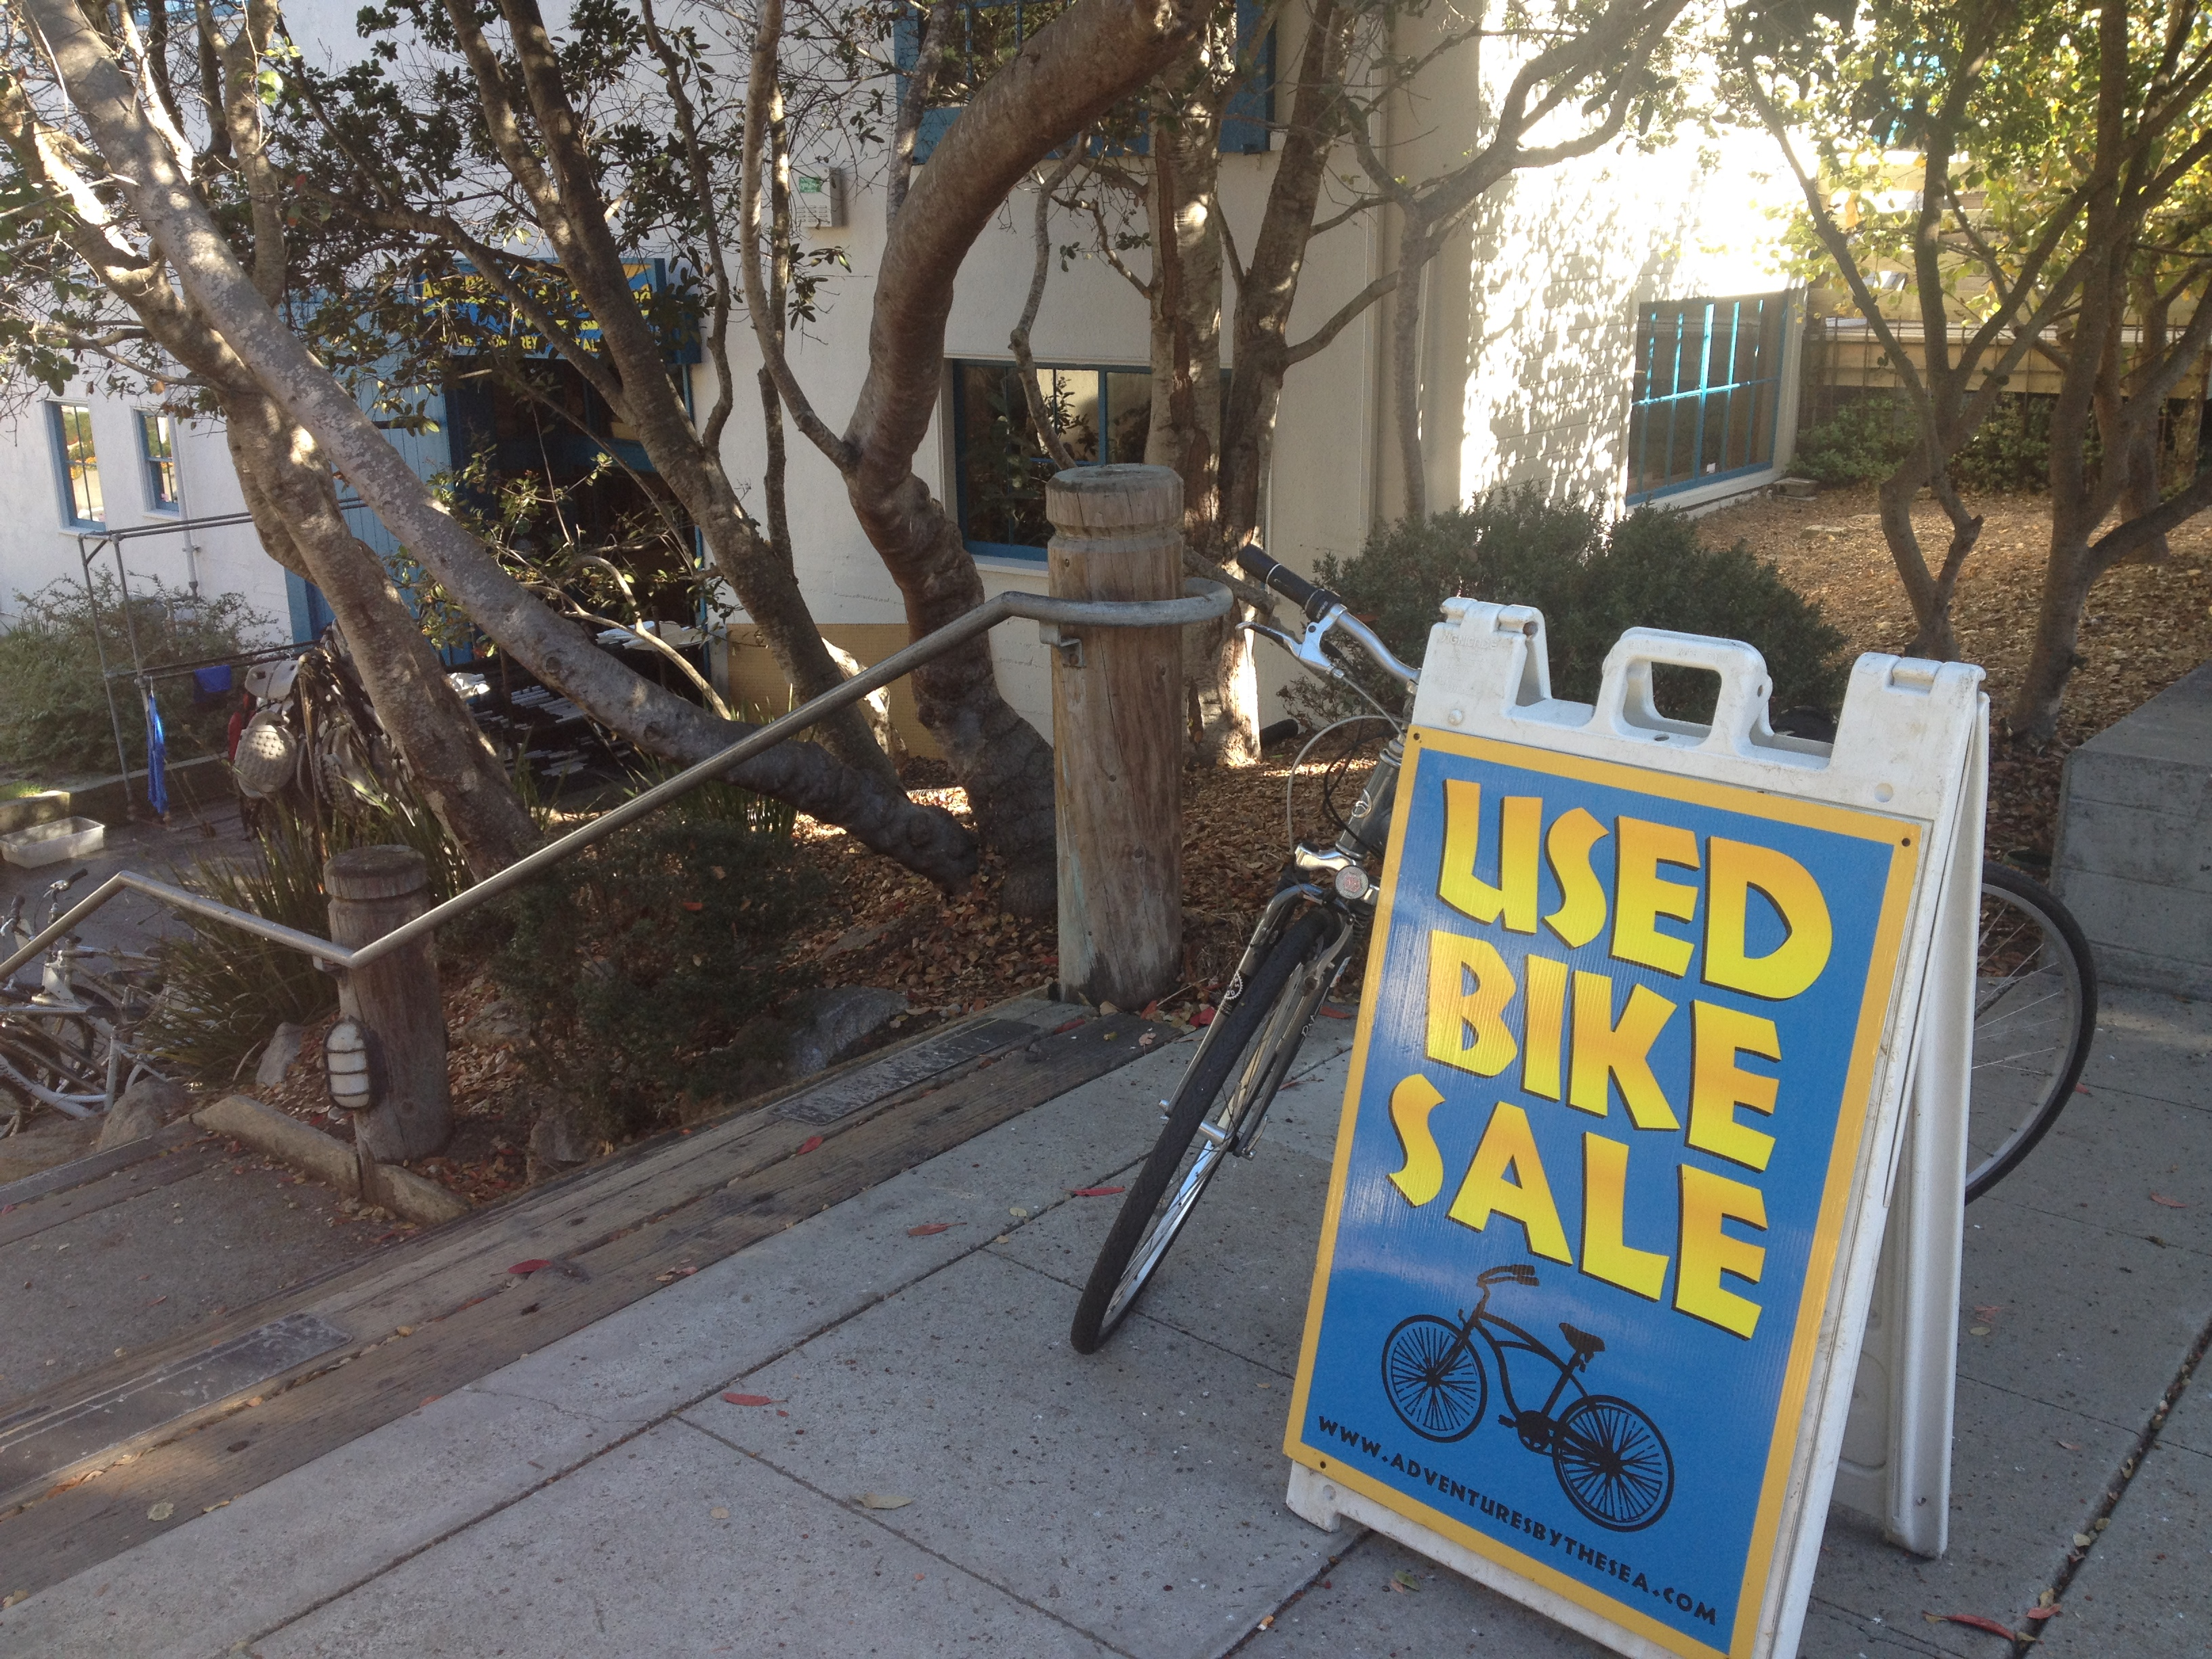 Used Bikes for Sale: From local bicycle dealers in Monterey County